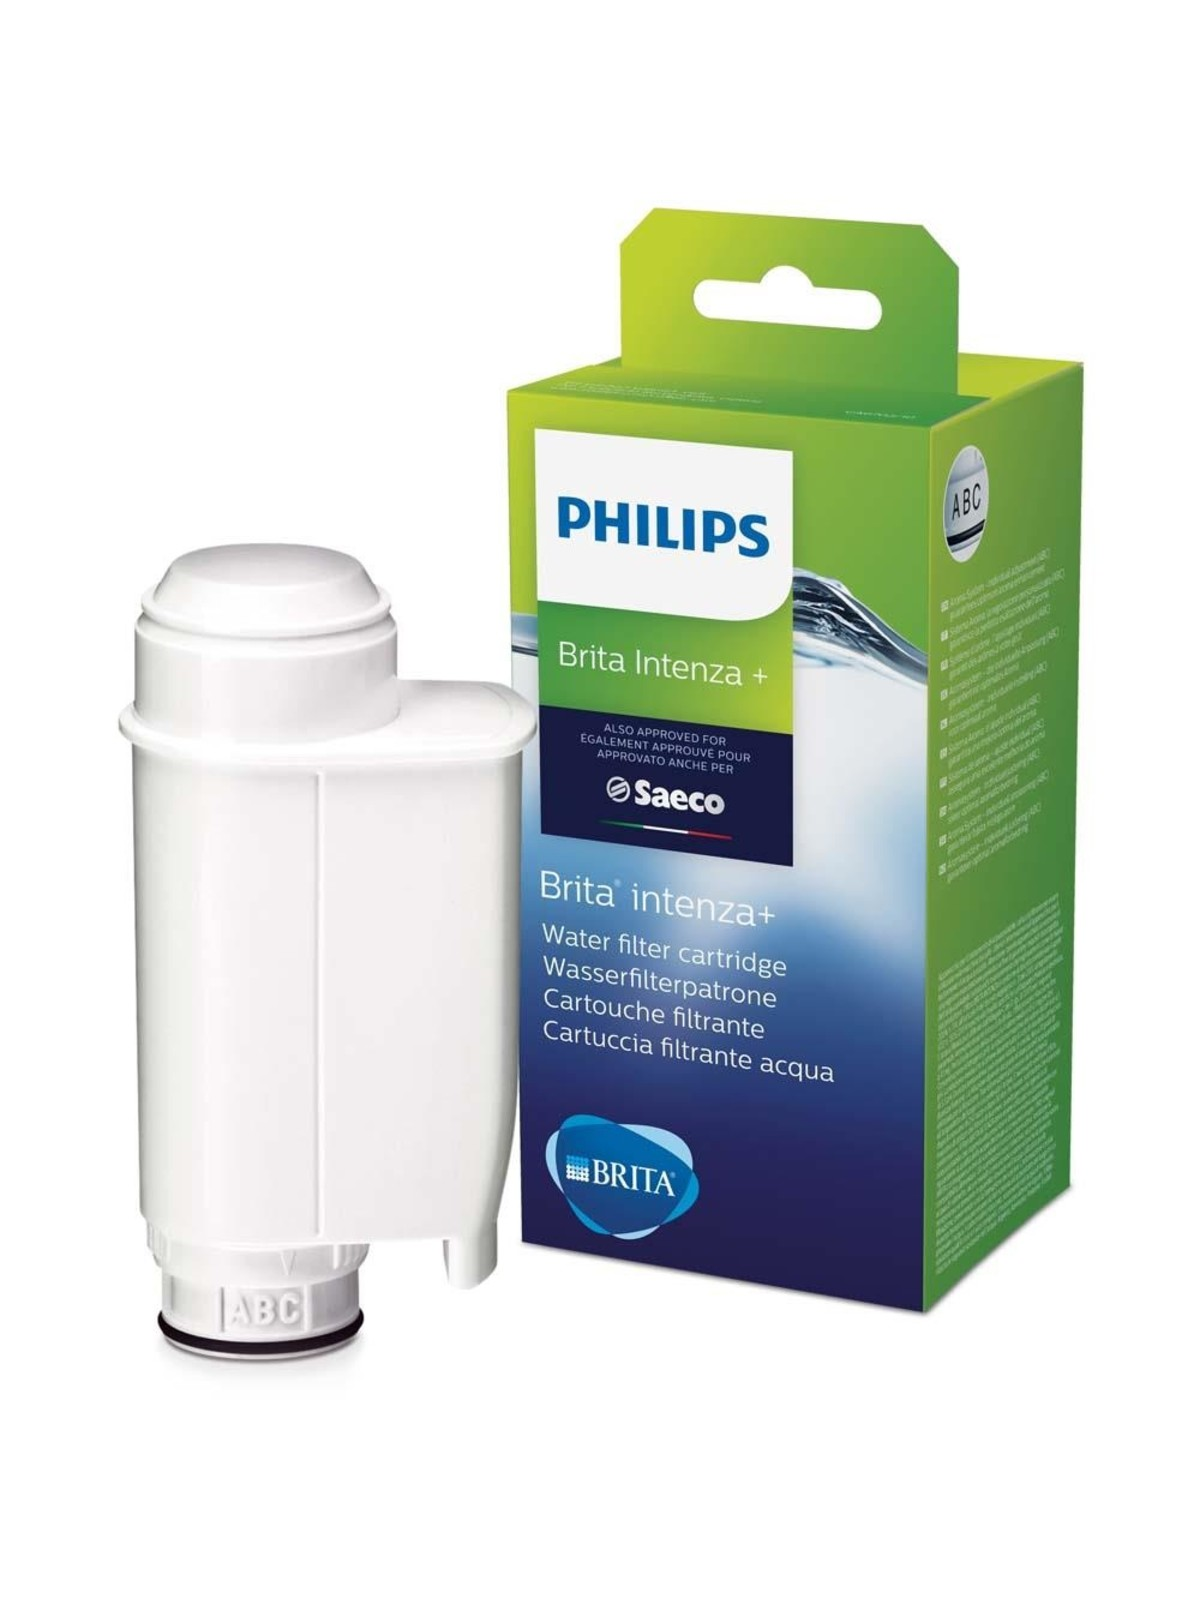 PHILIPS Intenza Water Filter